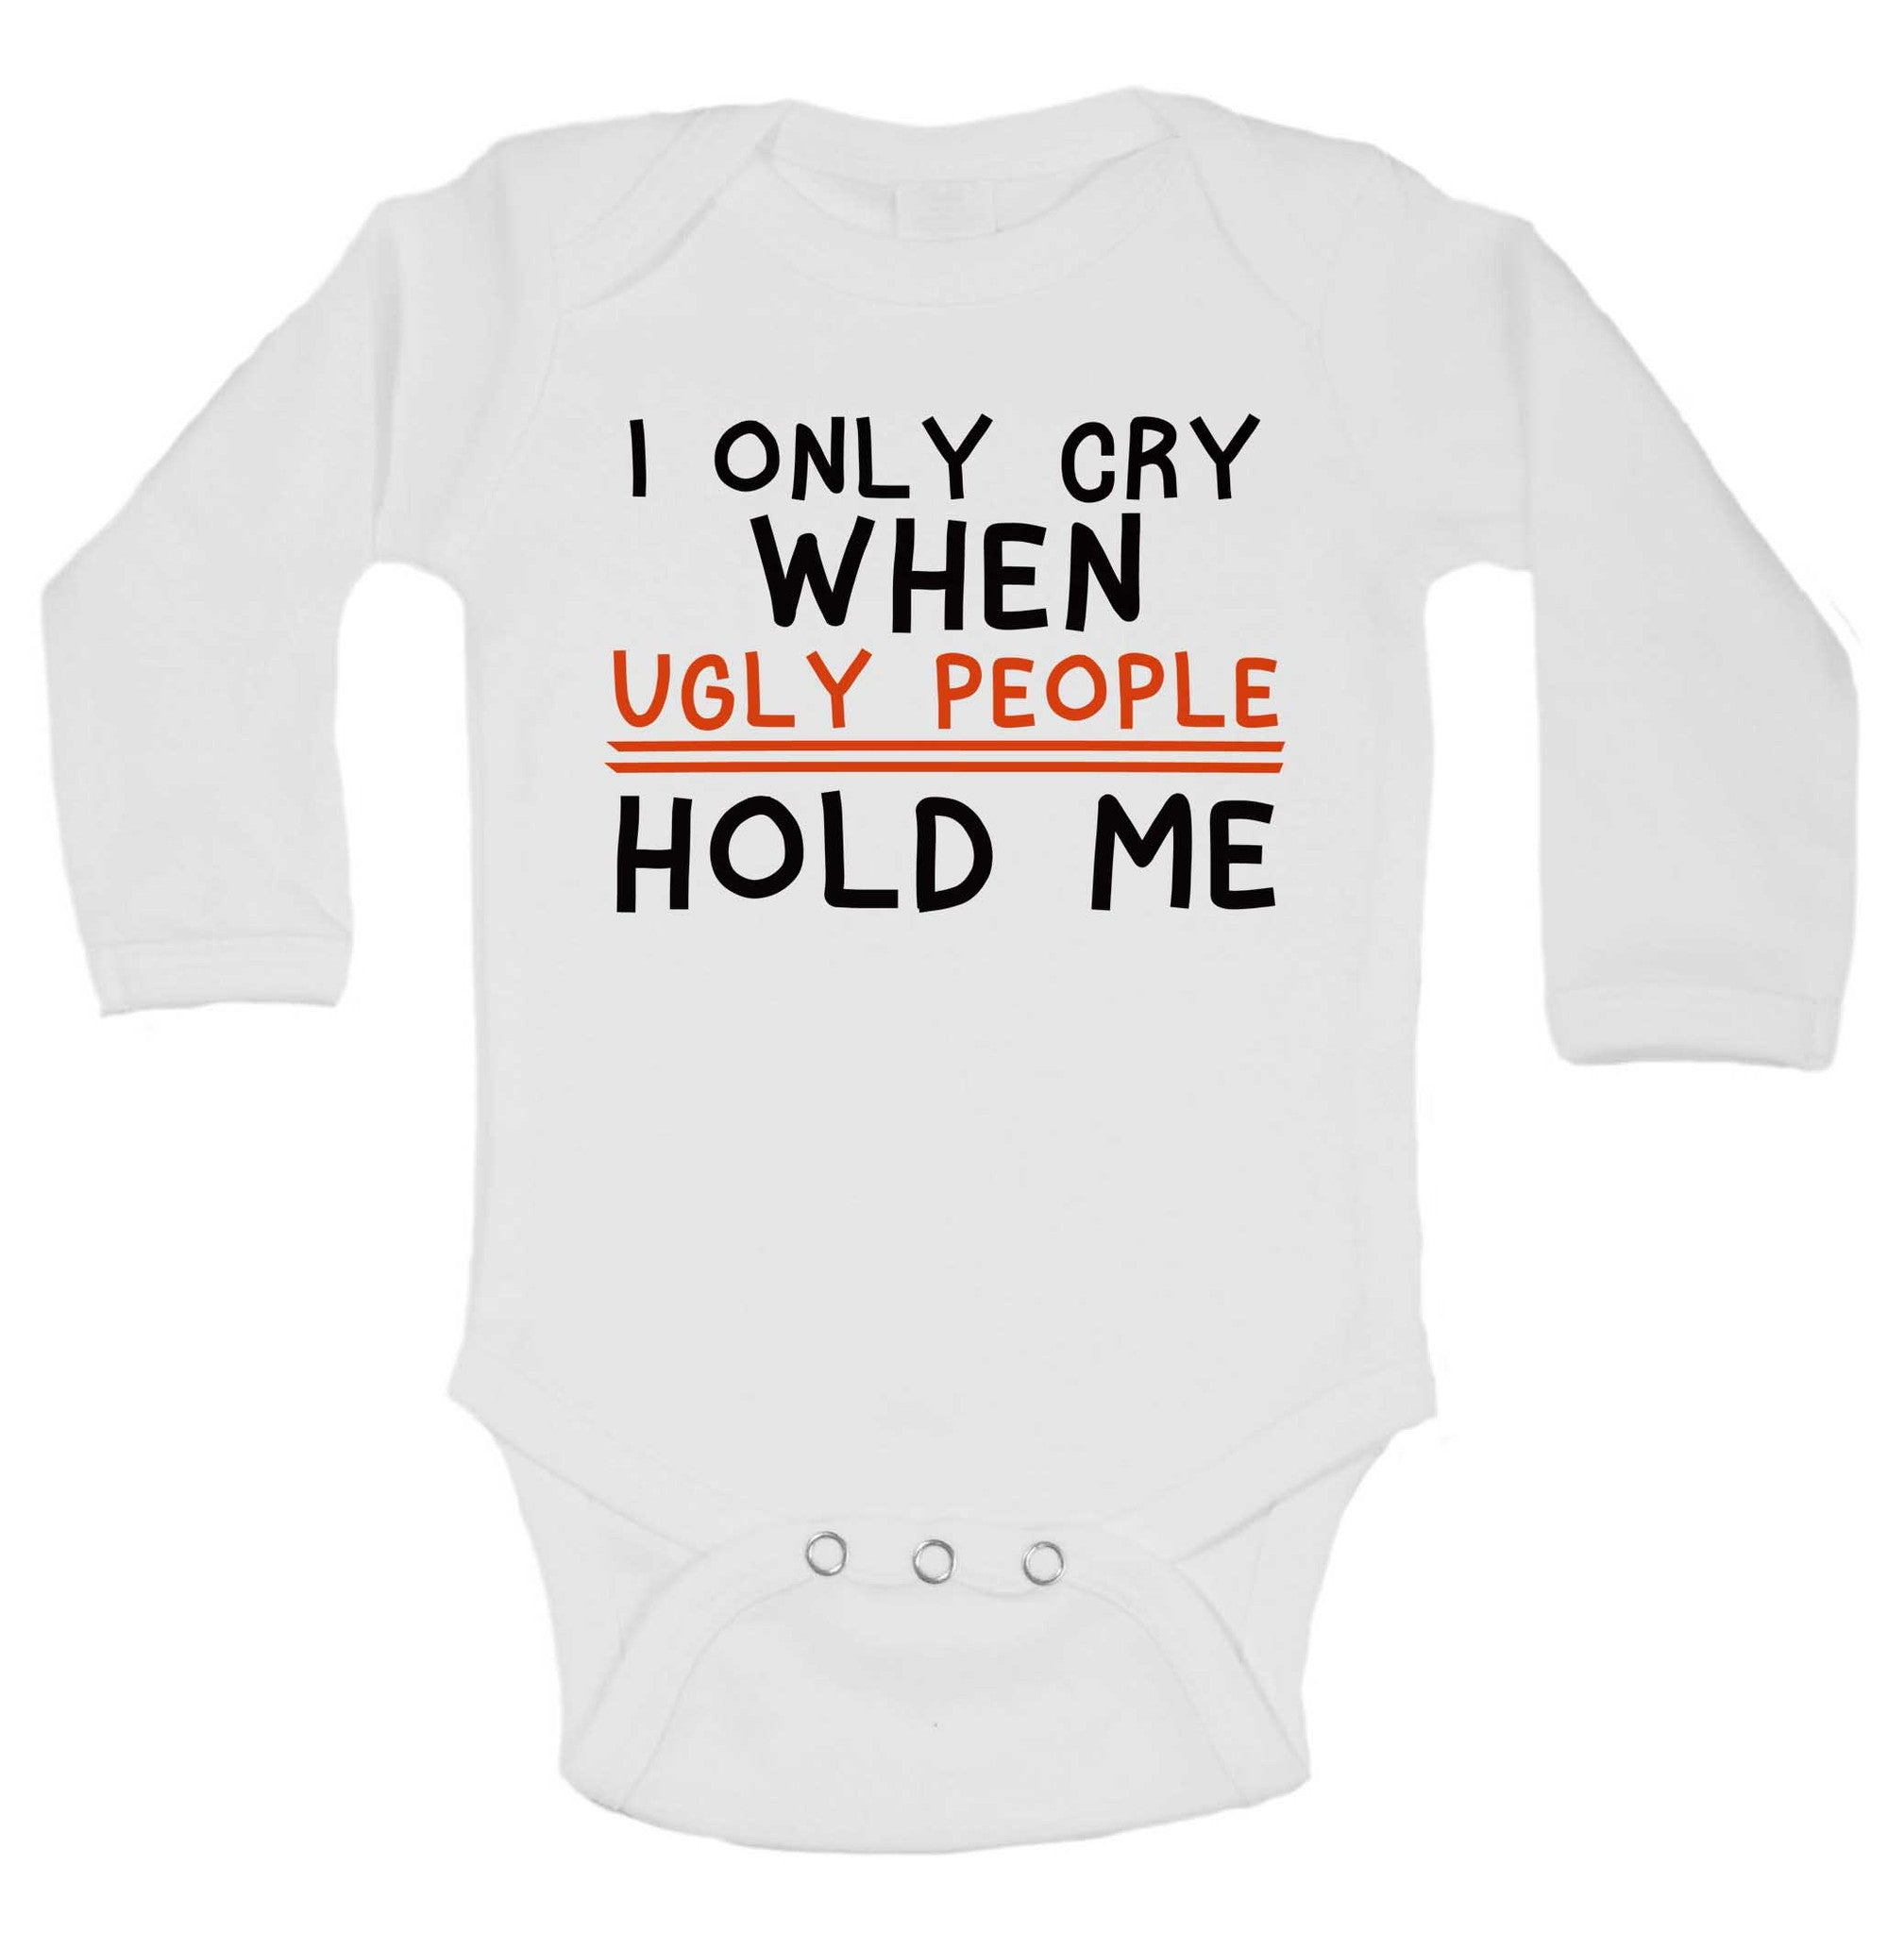 I Only Cry When Ugly People Hold Me Funny Kids Onesie - 177 - Funny Shirts Tank Tops Burnouts and Triblends  - 1